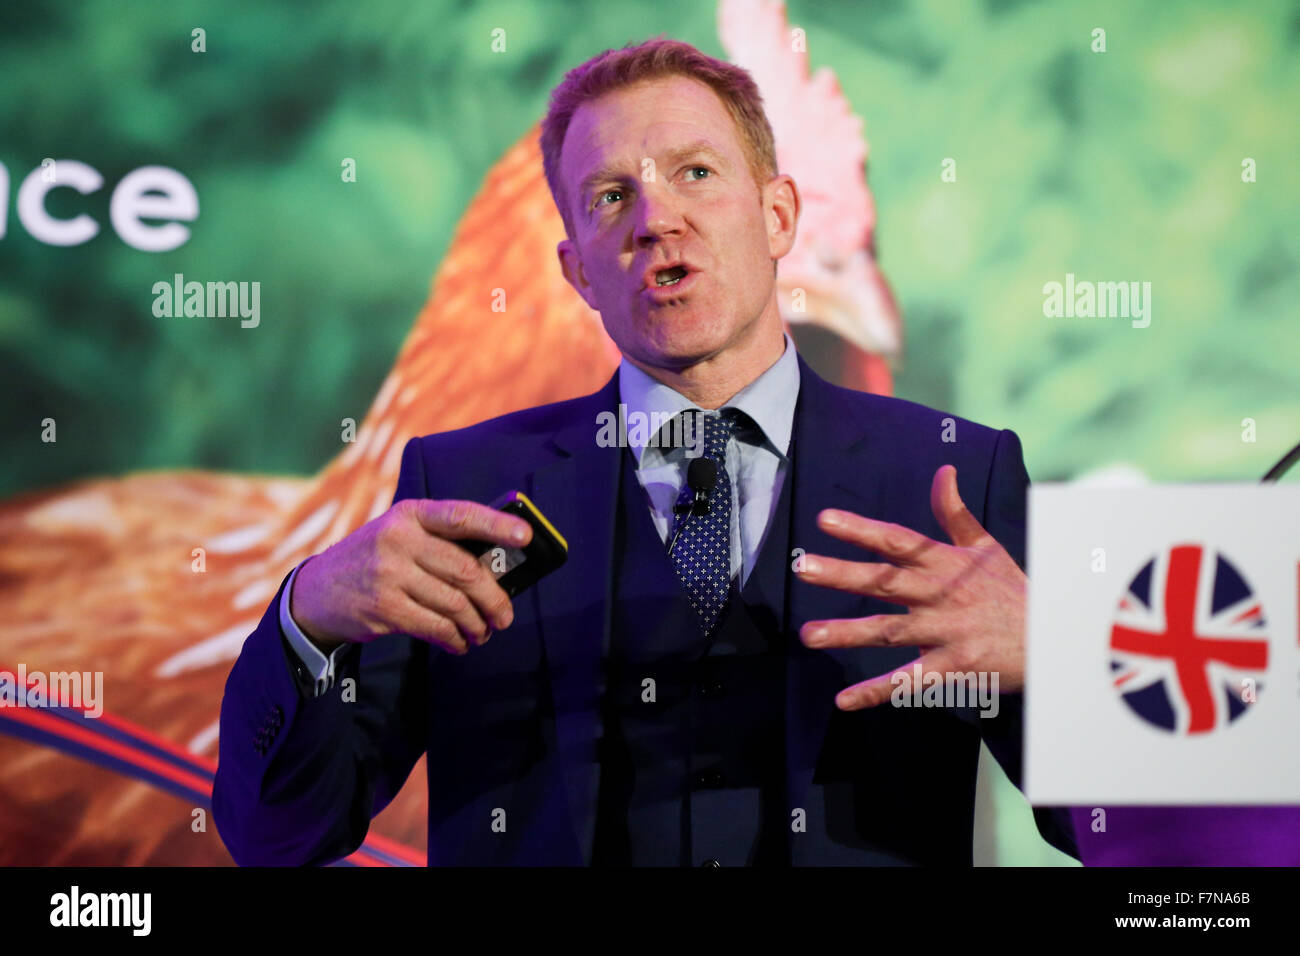 Countryfile's Adam Henson at the2015 BFREPA Conference at the National Motorcycle Museum in Birmingham, UK. - Stock Image